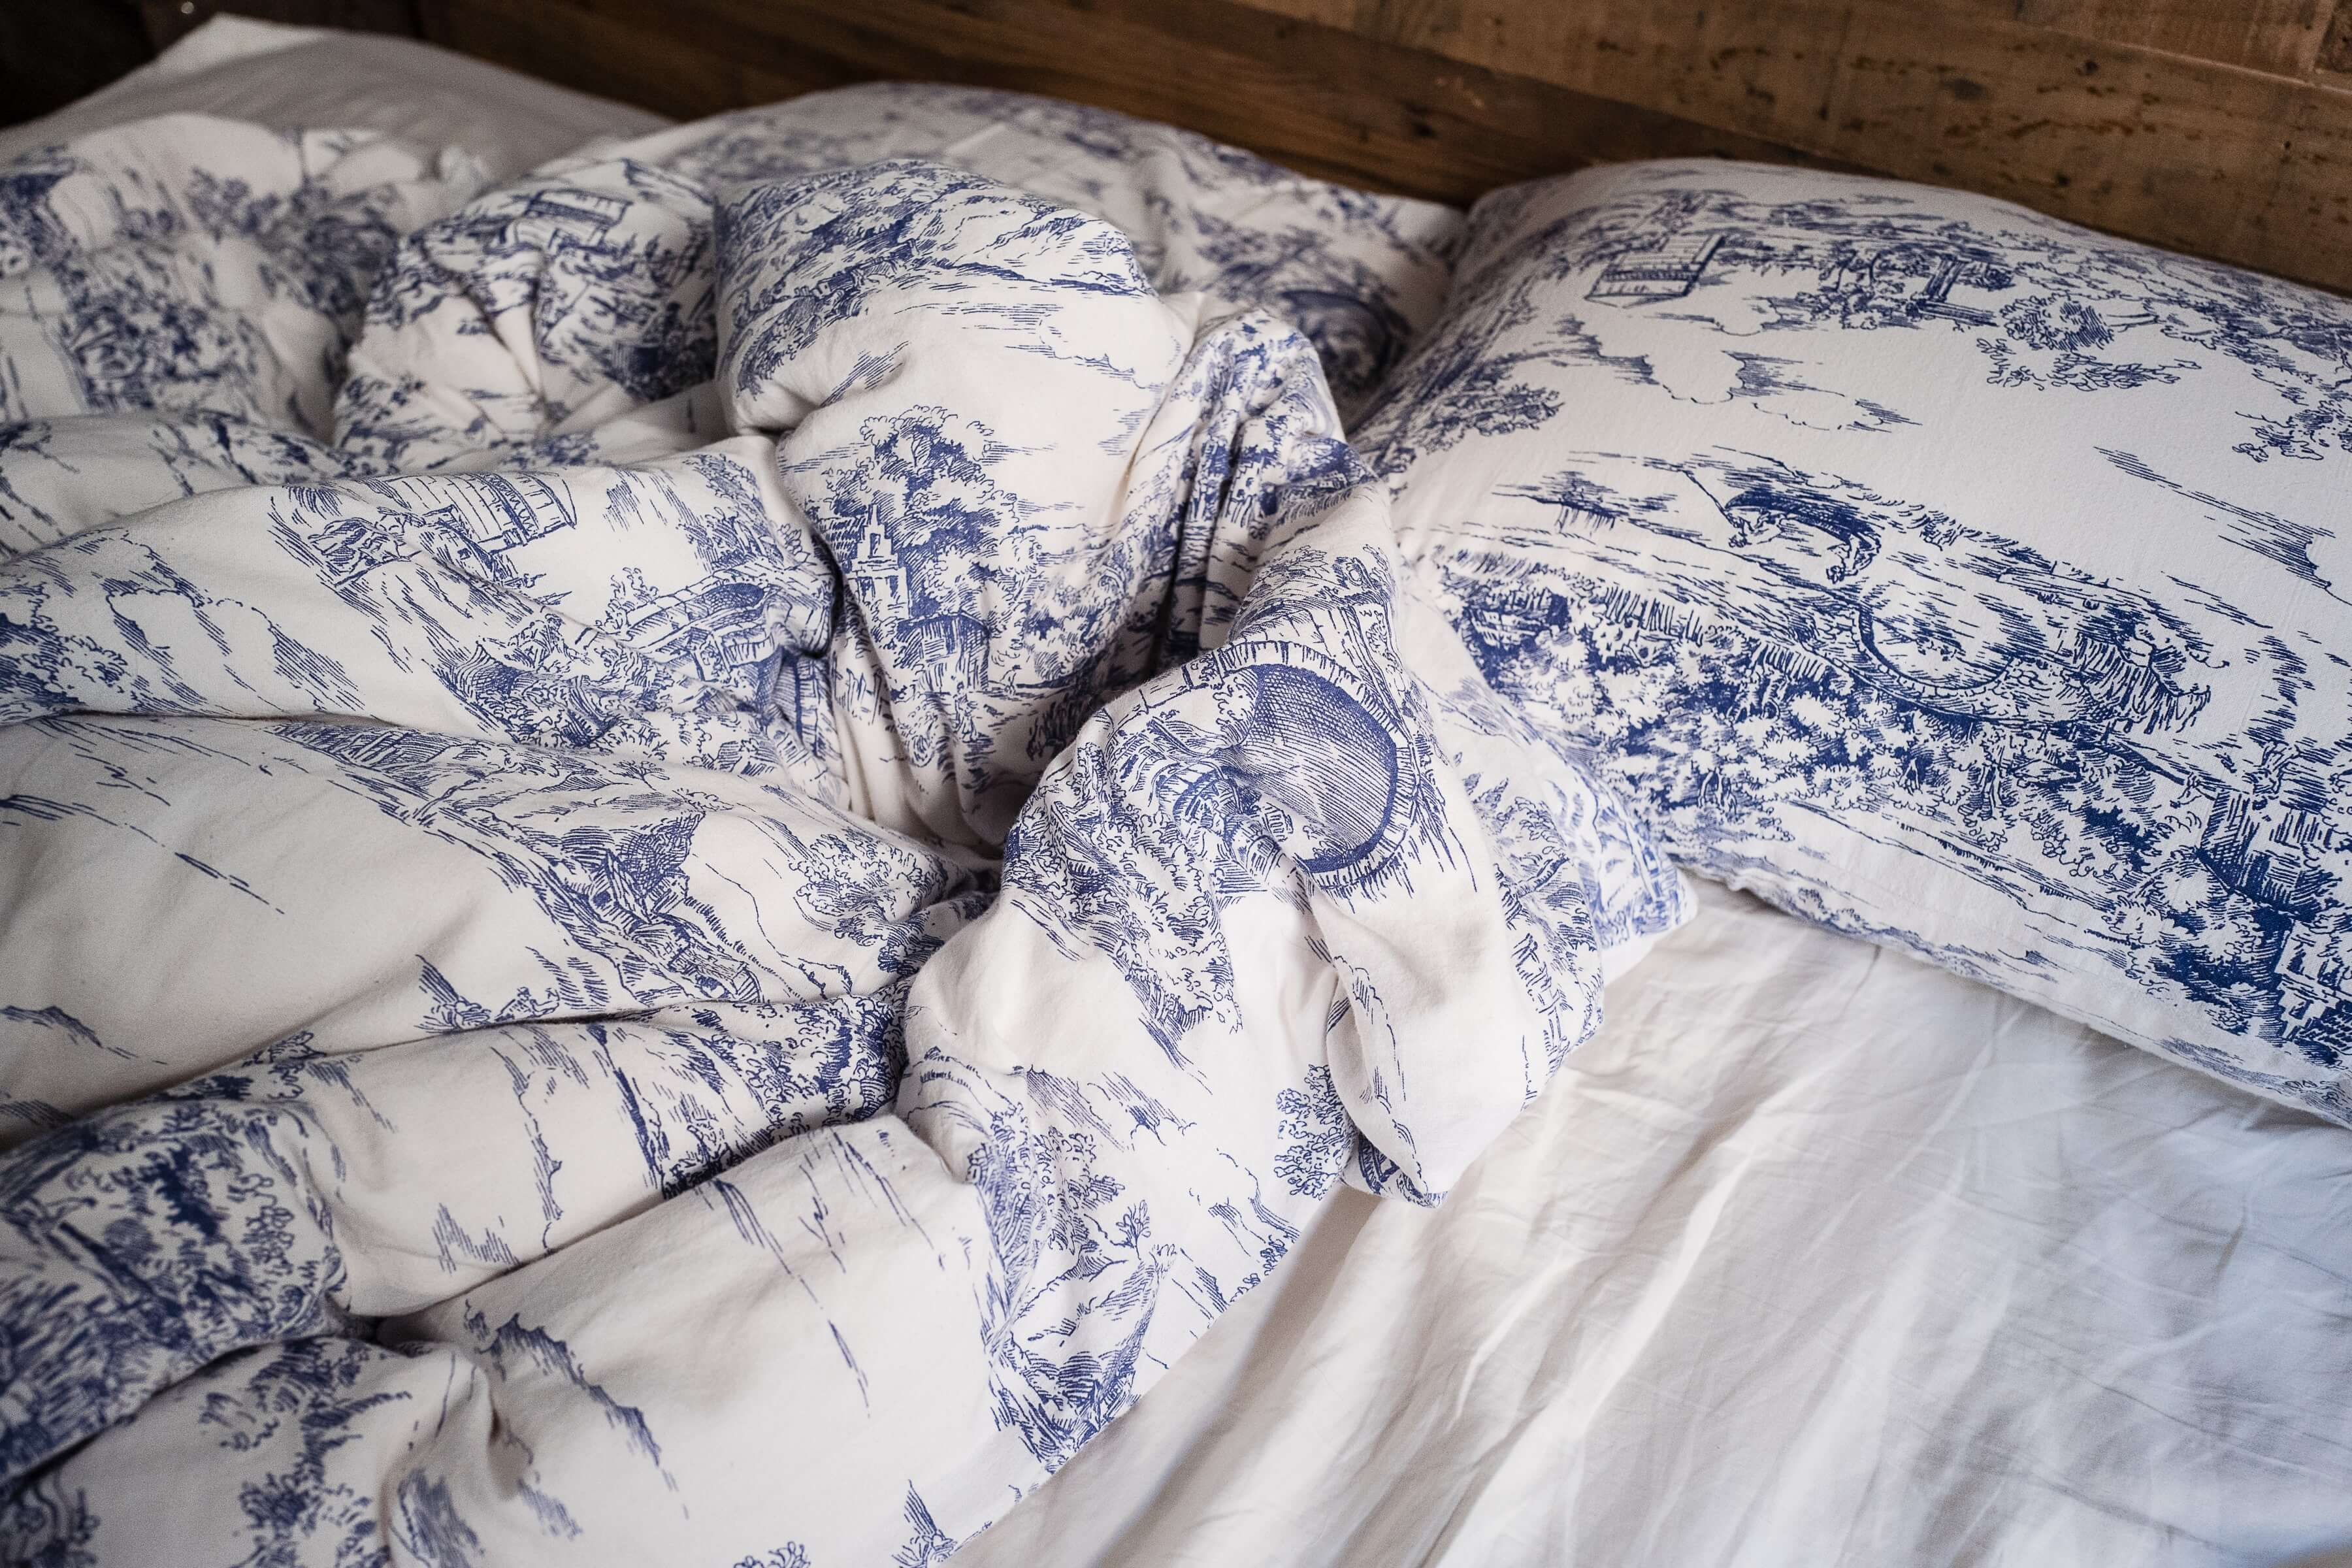 A comforter with toile de Jouy patterns